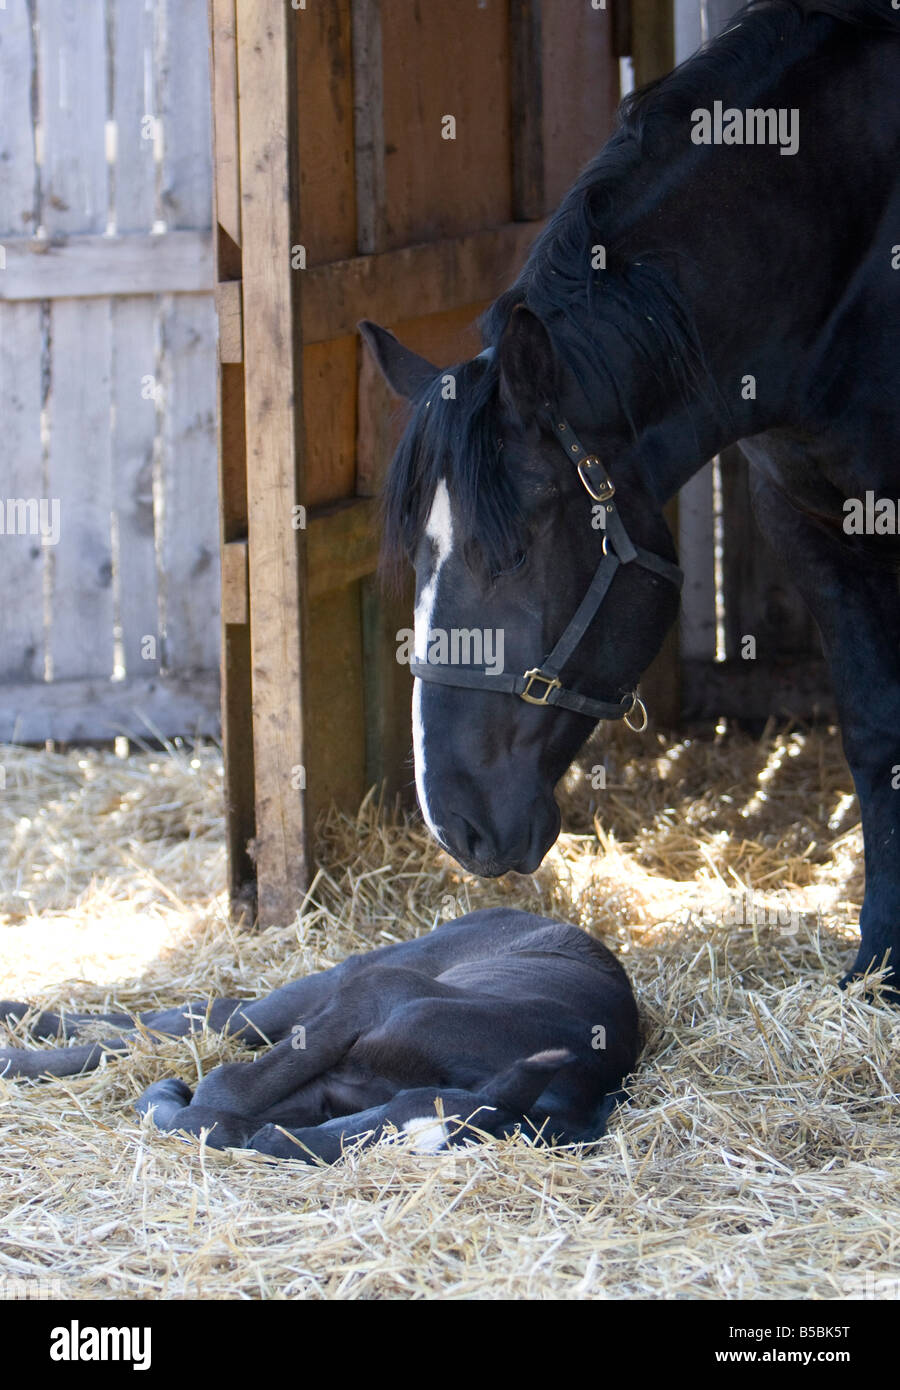 Percheron mare with foal sleeping at her side standing in a barn yard. - Stock Image